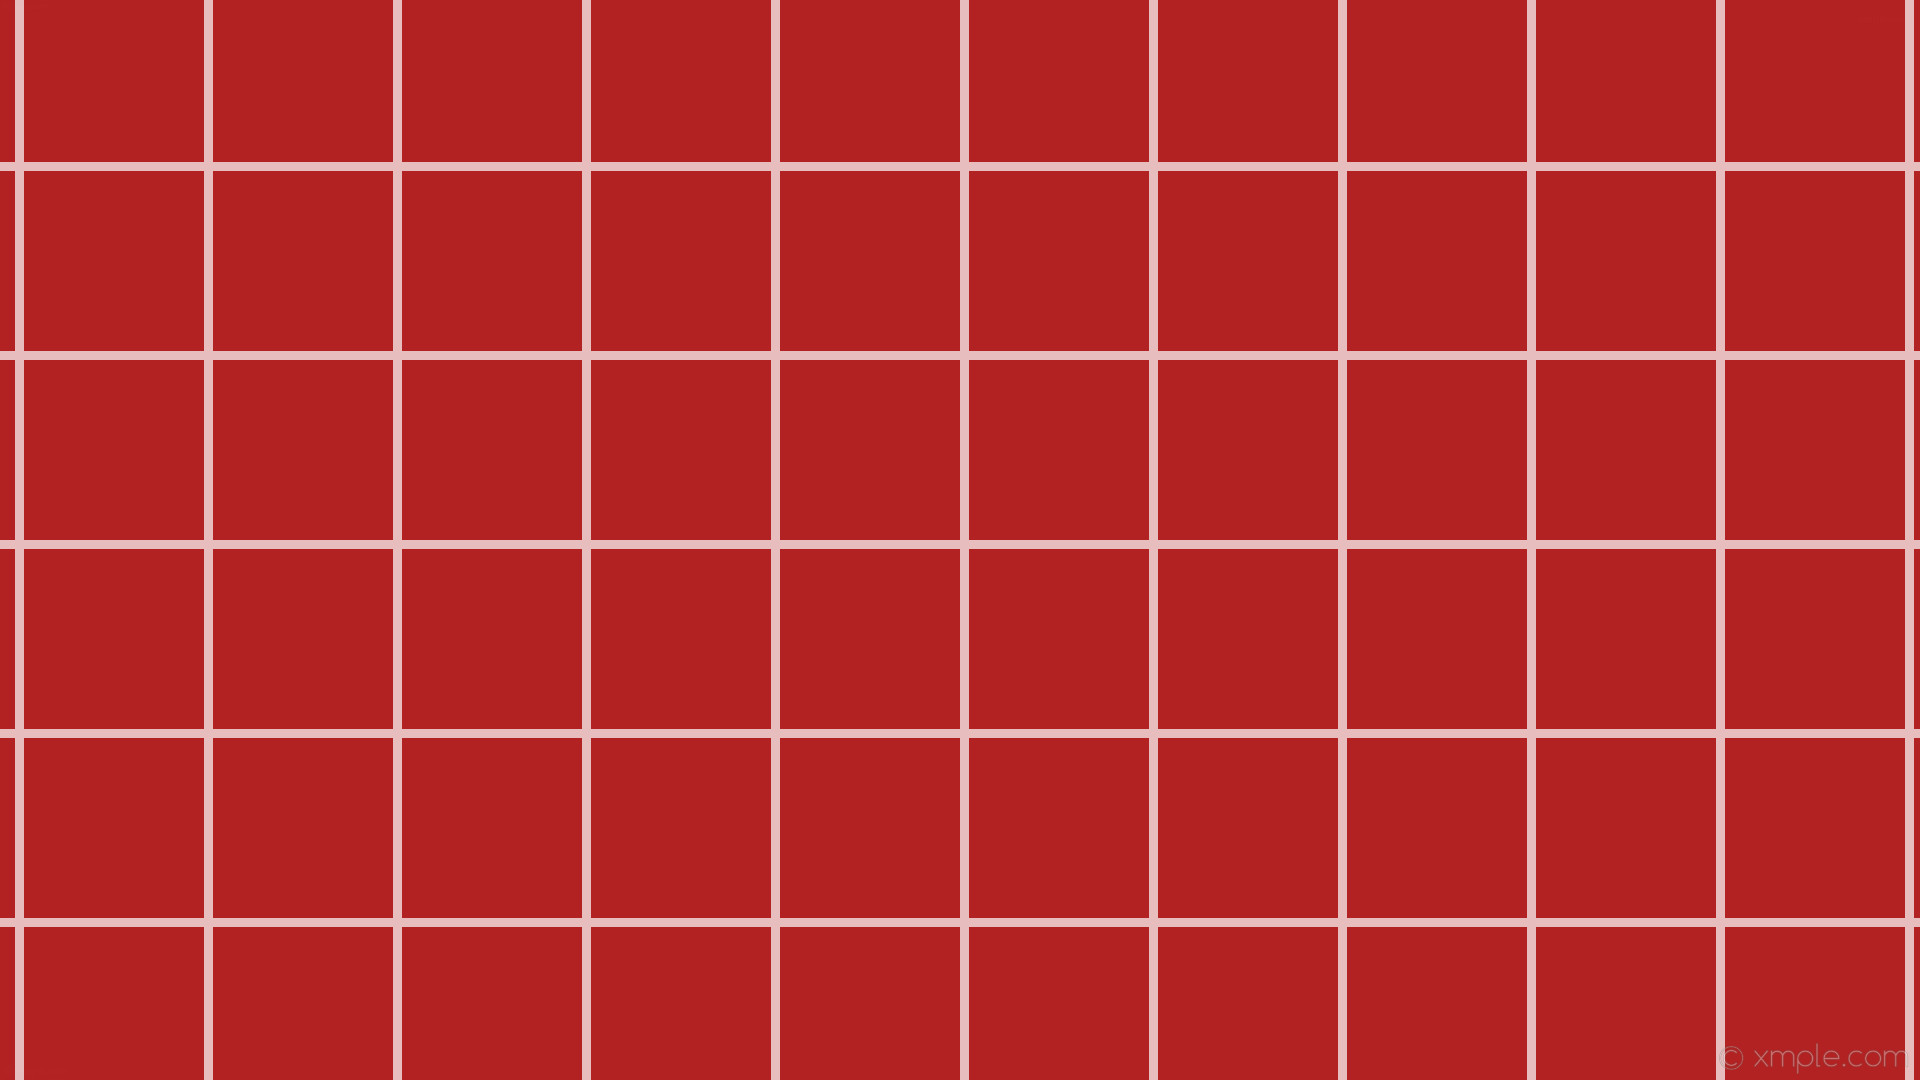 1920x1080 wallpaper red white graph paper grid fire brick #b22222 #ffffff 0° 9px 189px